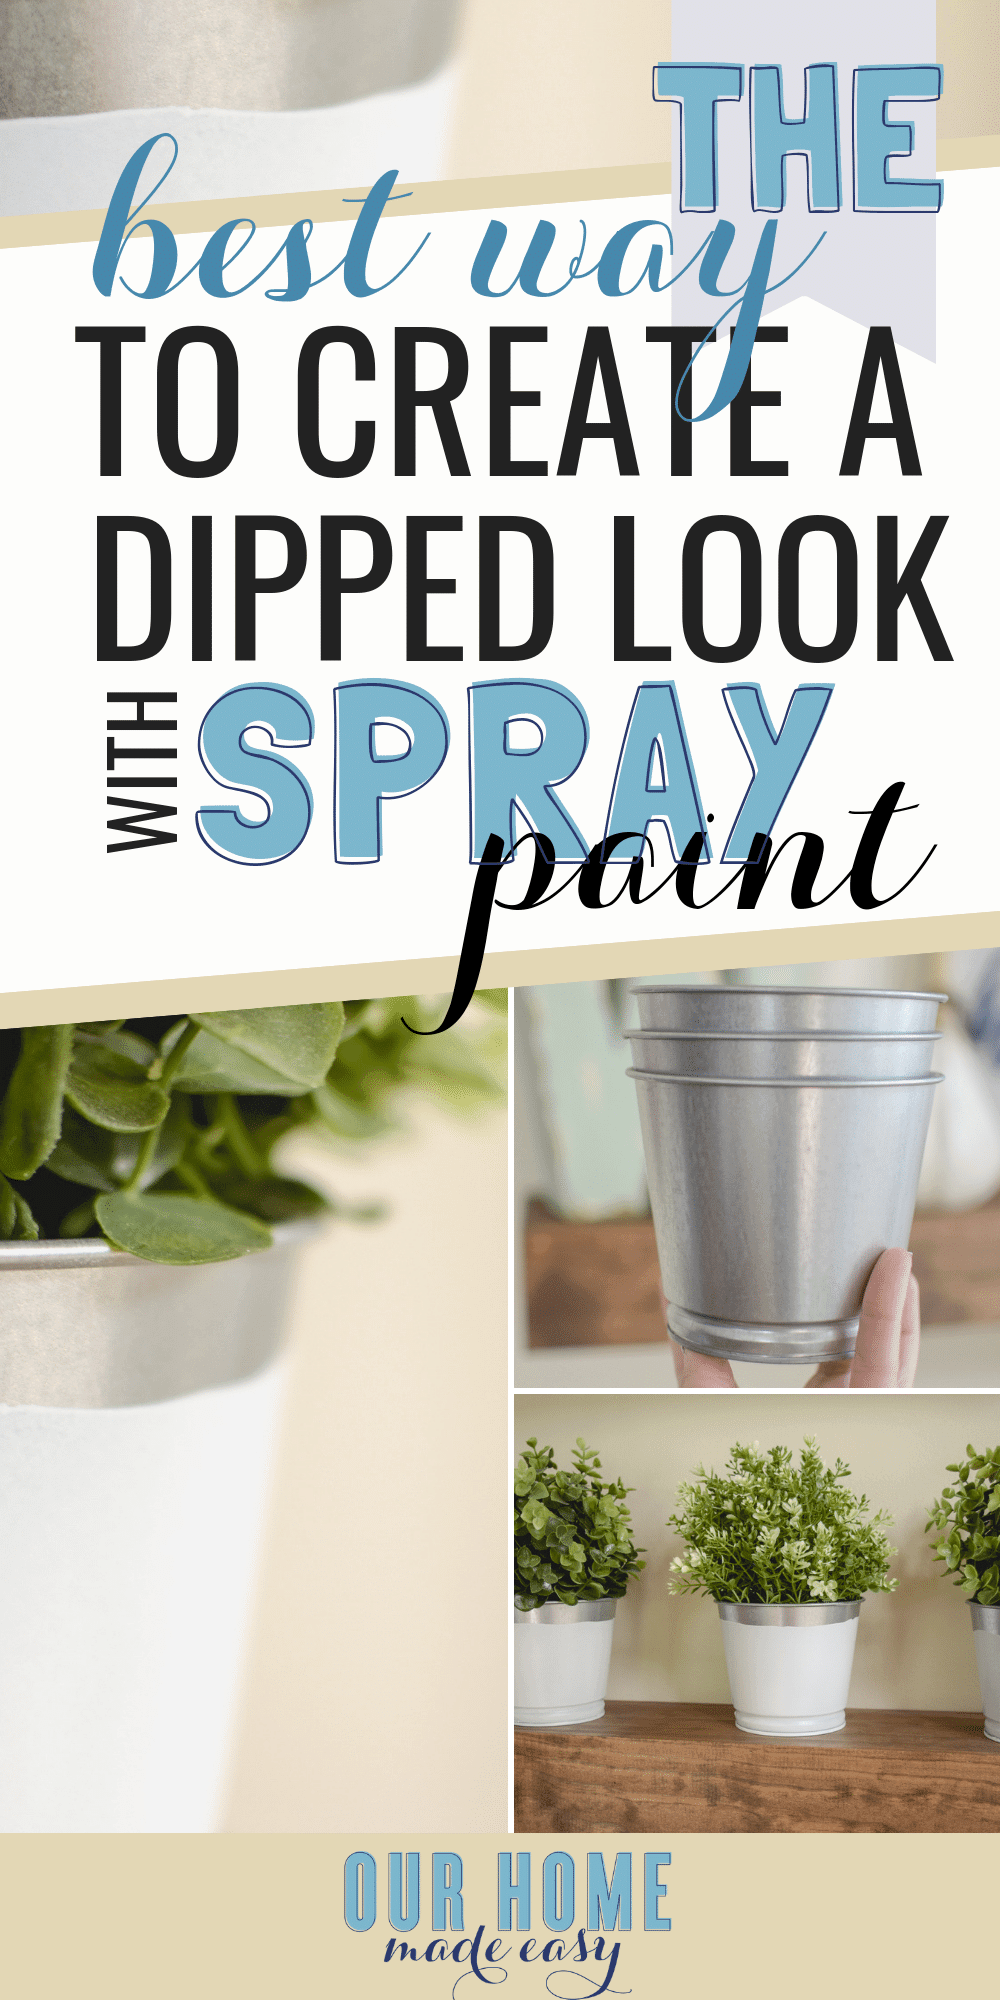 DIY your own dipped paint look but without the mess! Use Plasti Dip Crafts to make a fun new project that is super easy and removable! #sponsored #crafts #diycraft #paint #farmhouse #plastidip